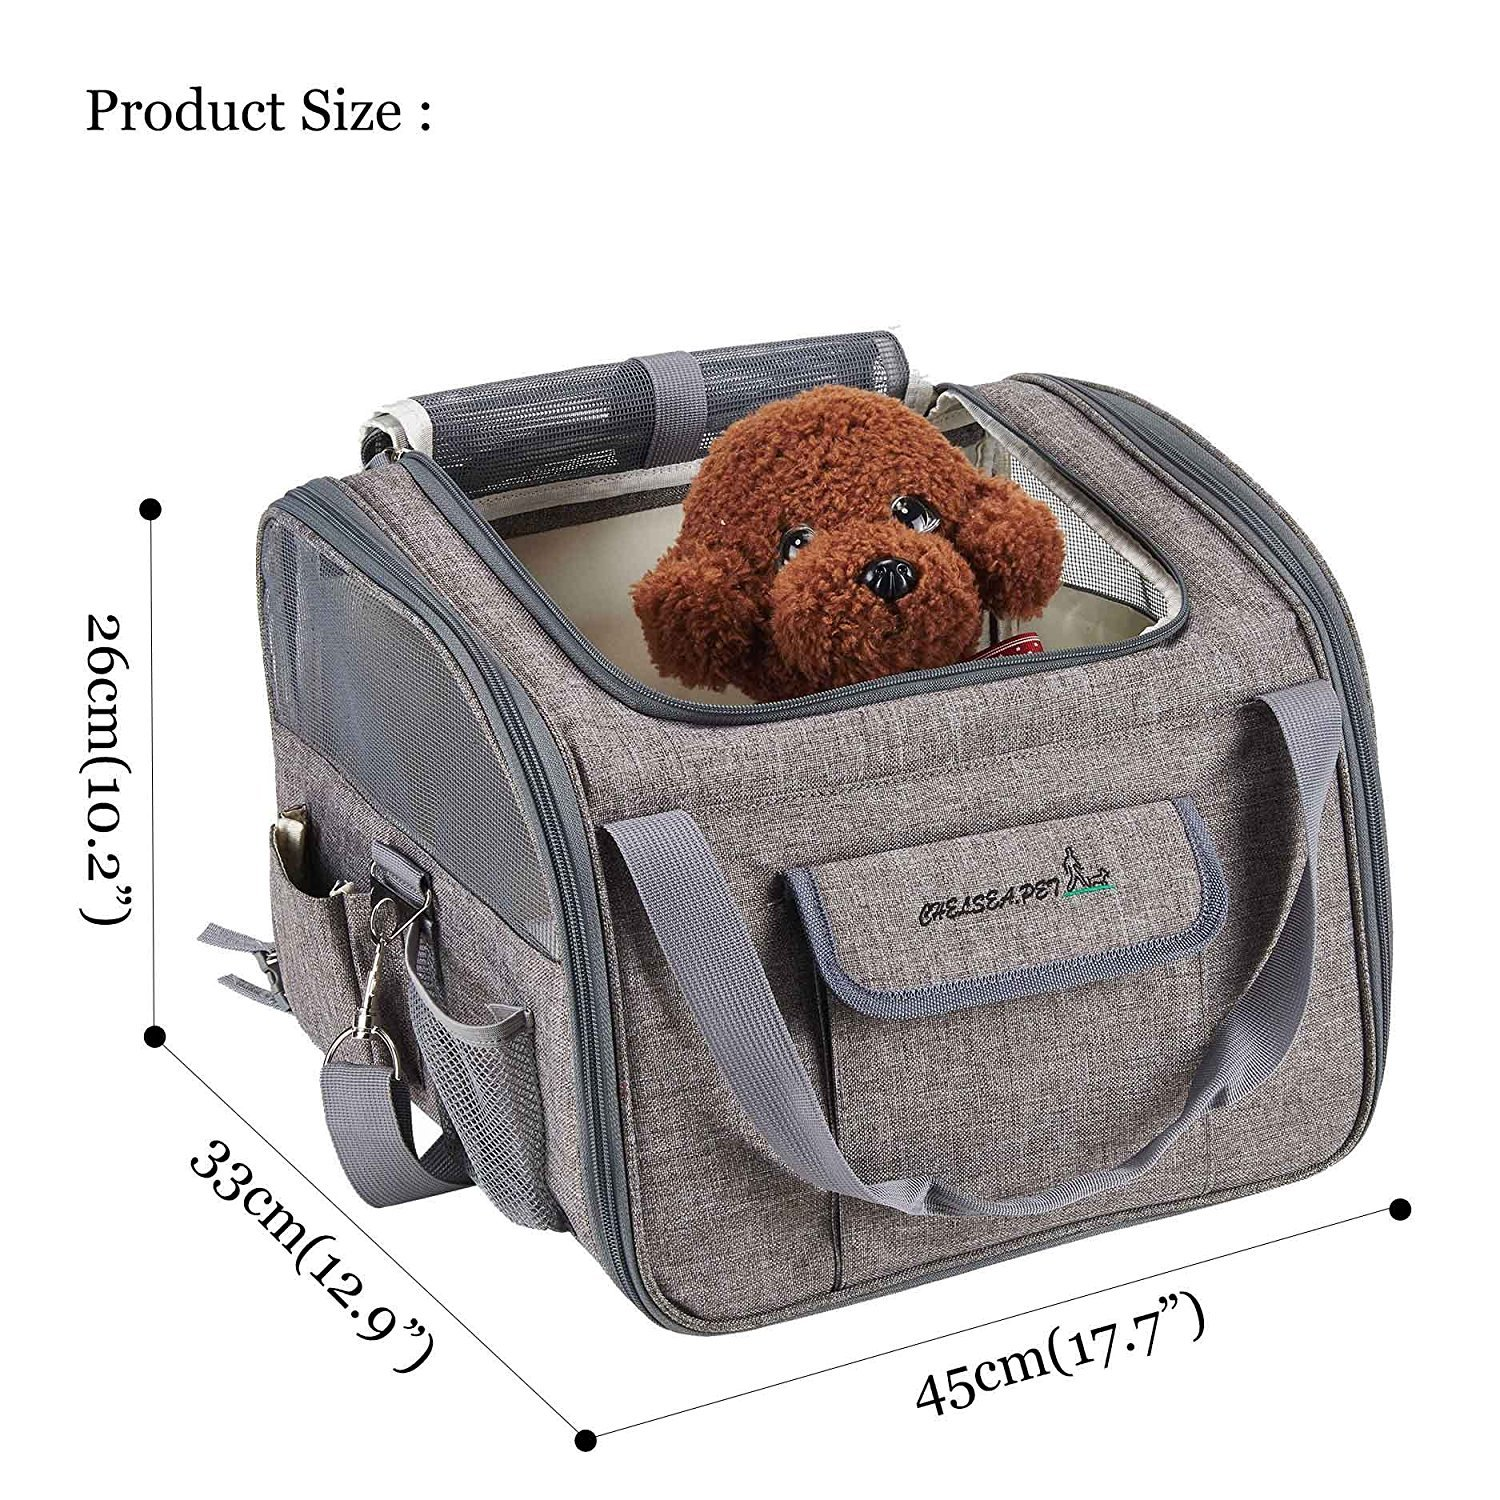 Decoroom Pet Car Seat Carrier Dog Cat Lookout Booster Seat Soft-Sided Foldable Puppy Travel Bag Light Gray by Decoroom (Image #3)